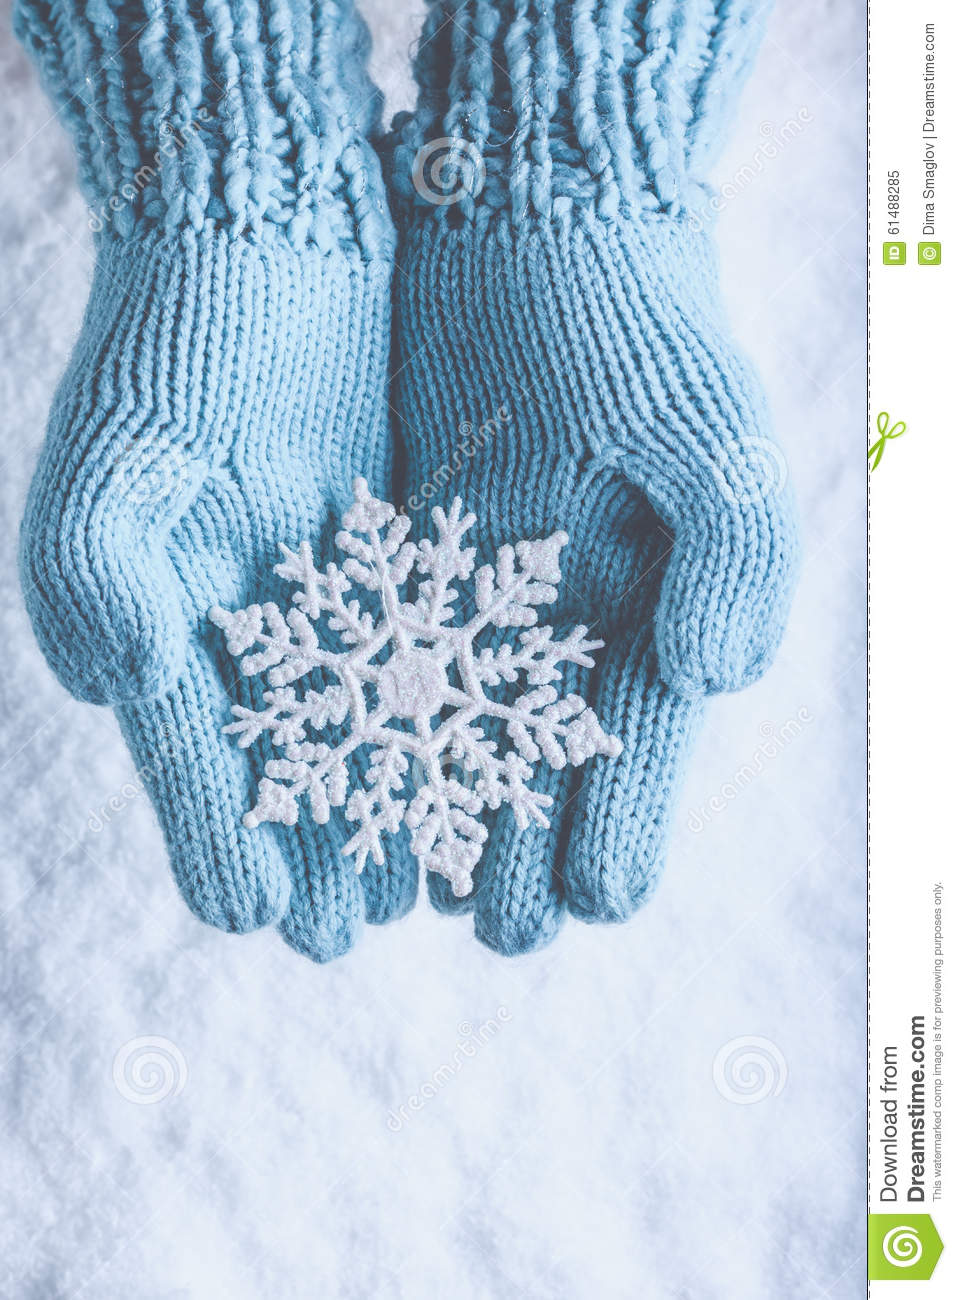 Knitting Pattern For Snowflake Mittens : Female Hands In Light Teal Knitted Mittens With Sparkling Wonderful Snowflake...